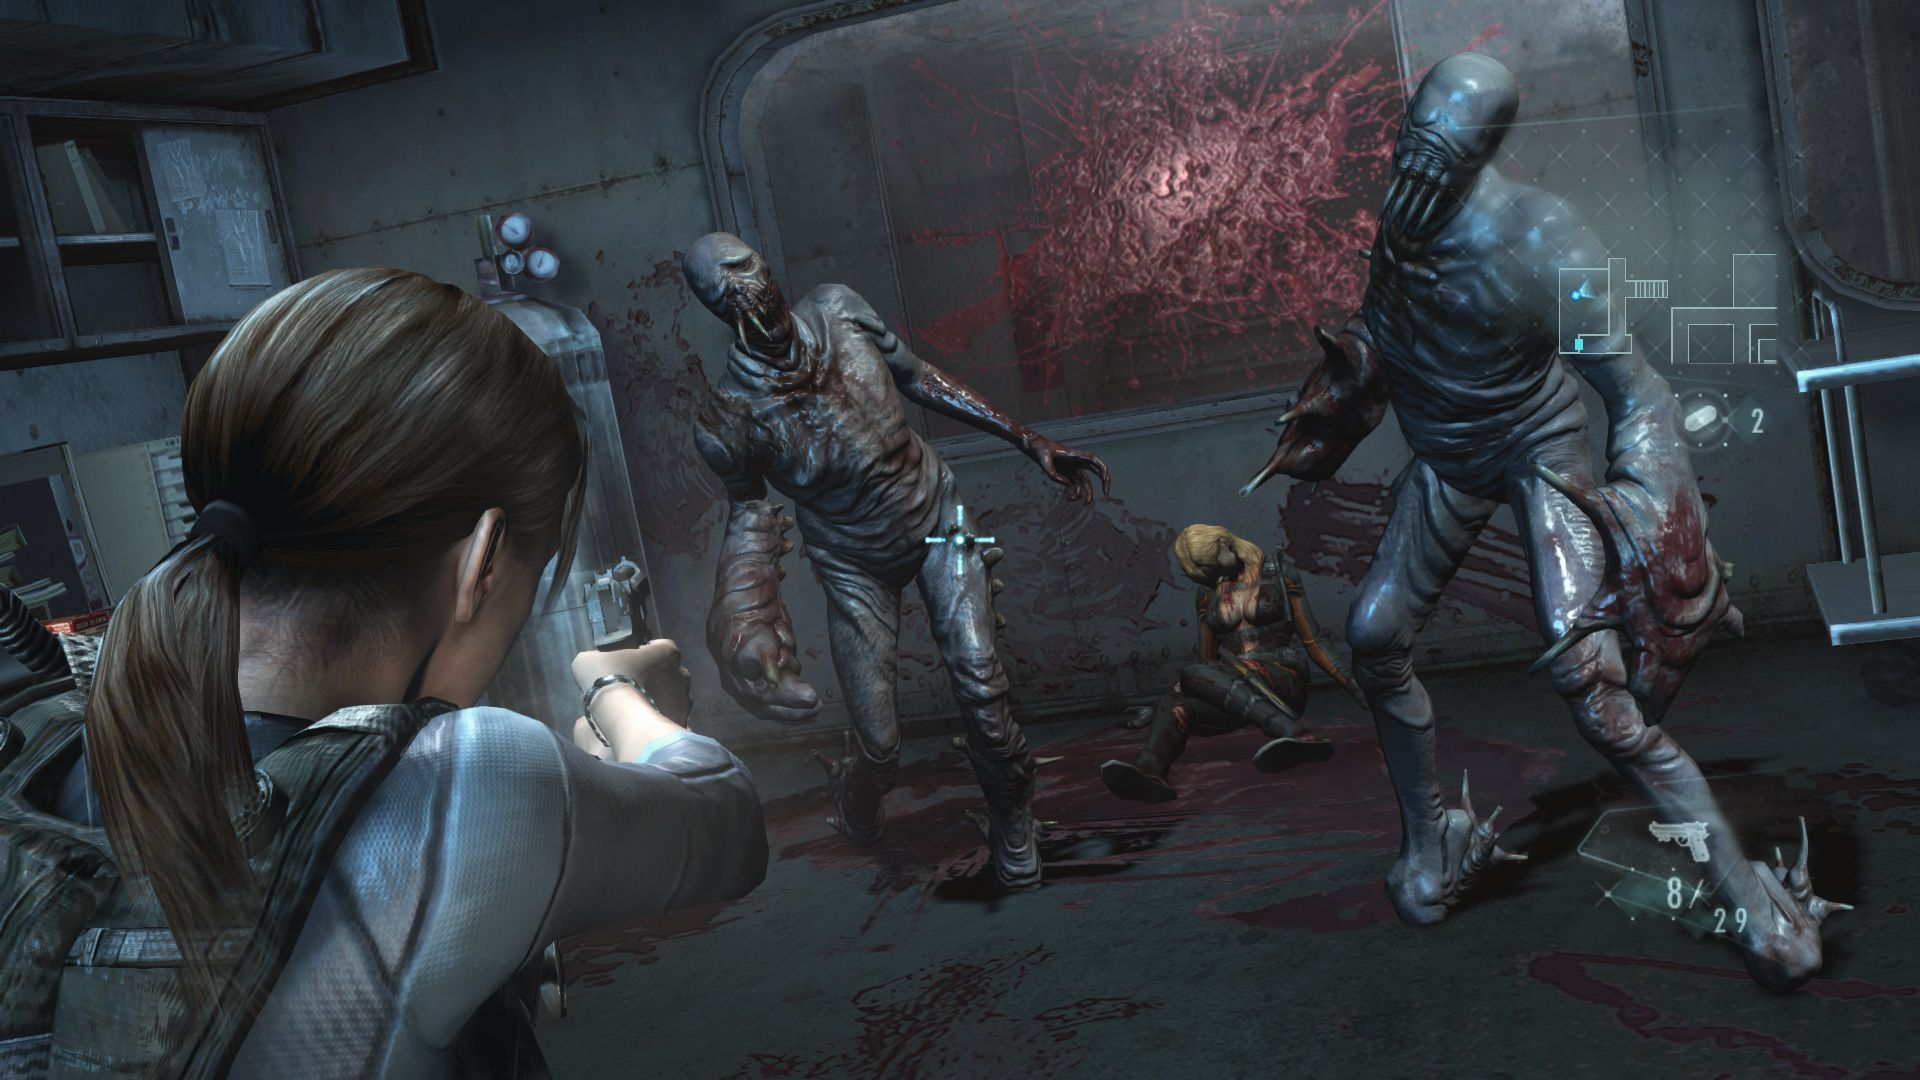 Capcom PC sale discounts select Resident Evil games and DmC